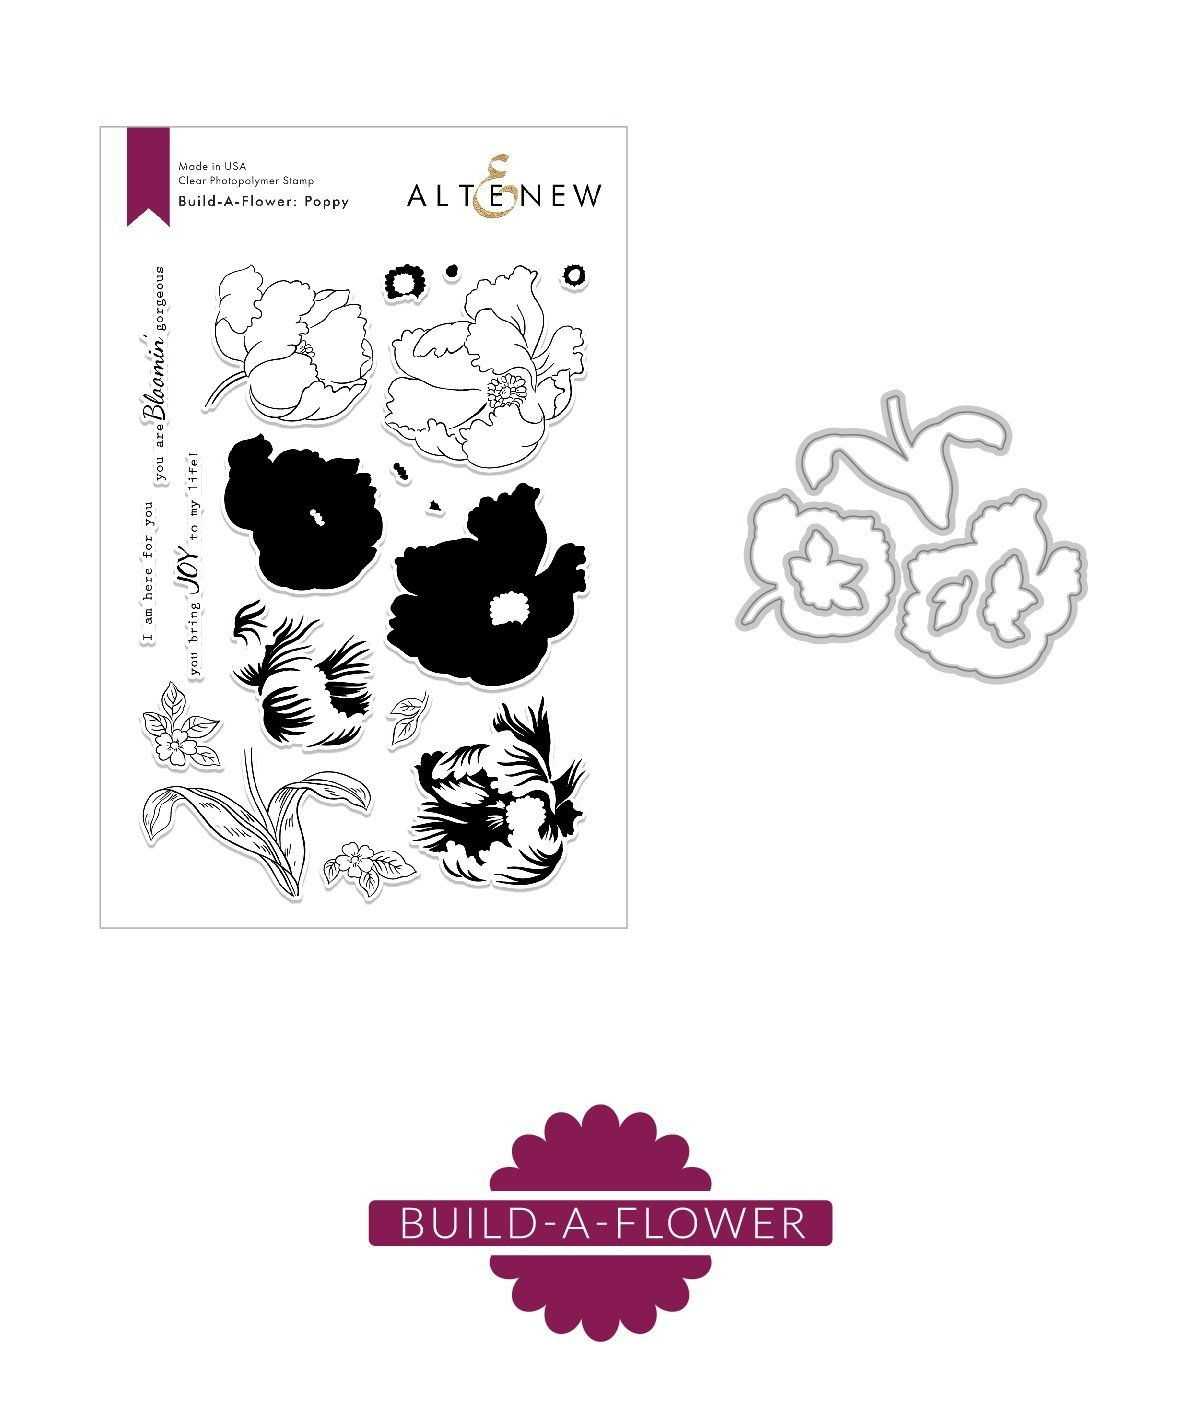 *NEW* - Altenew - Build-A-Flower: Poppy